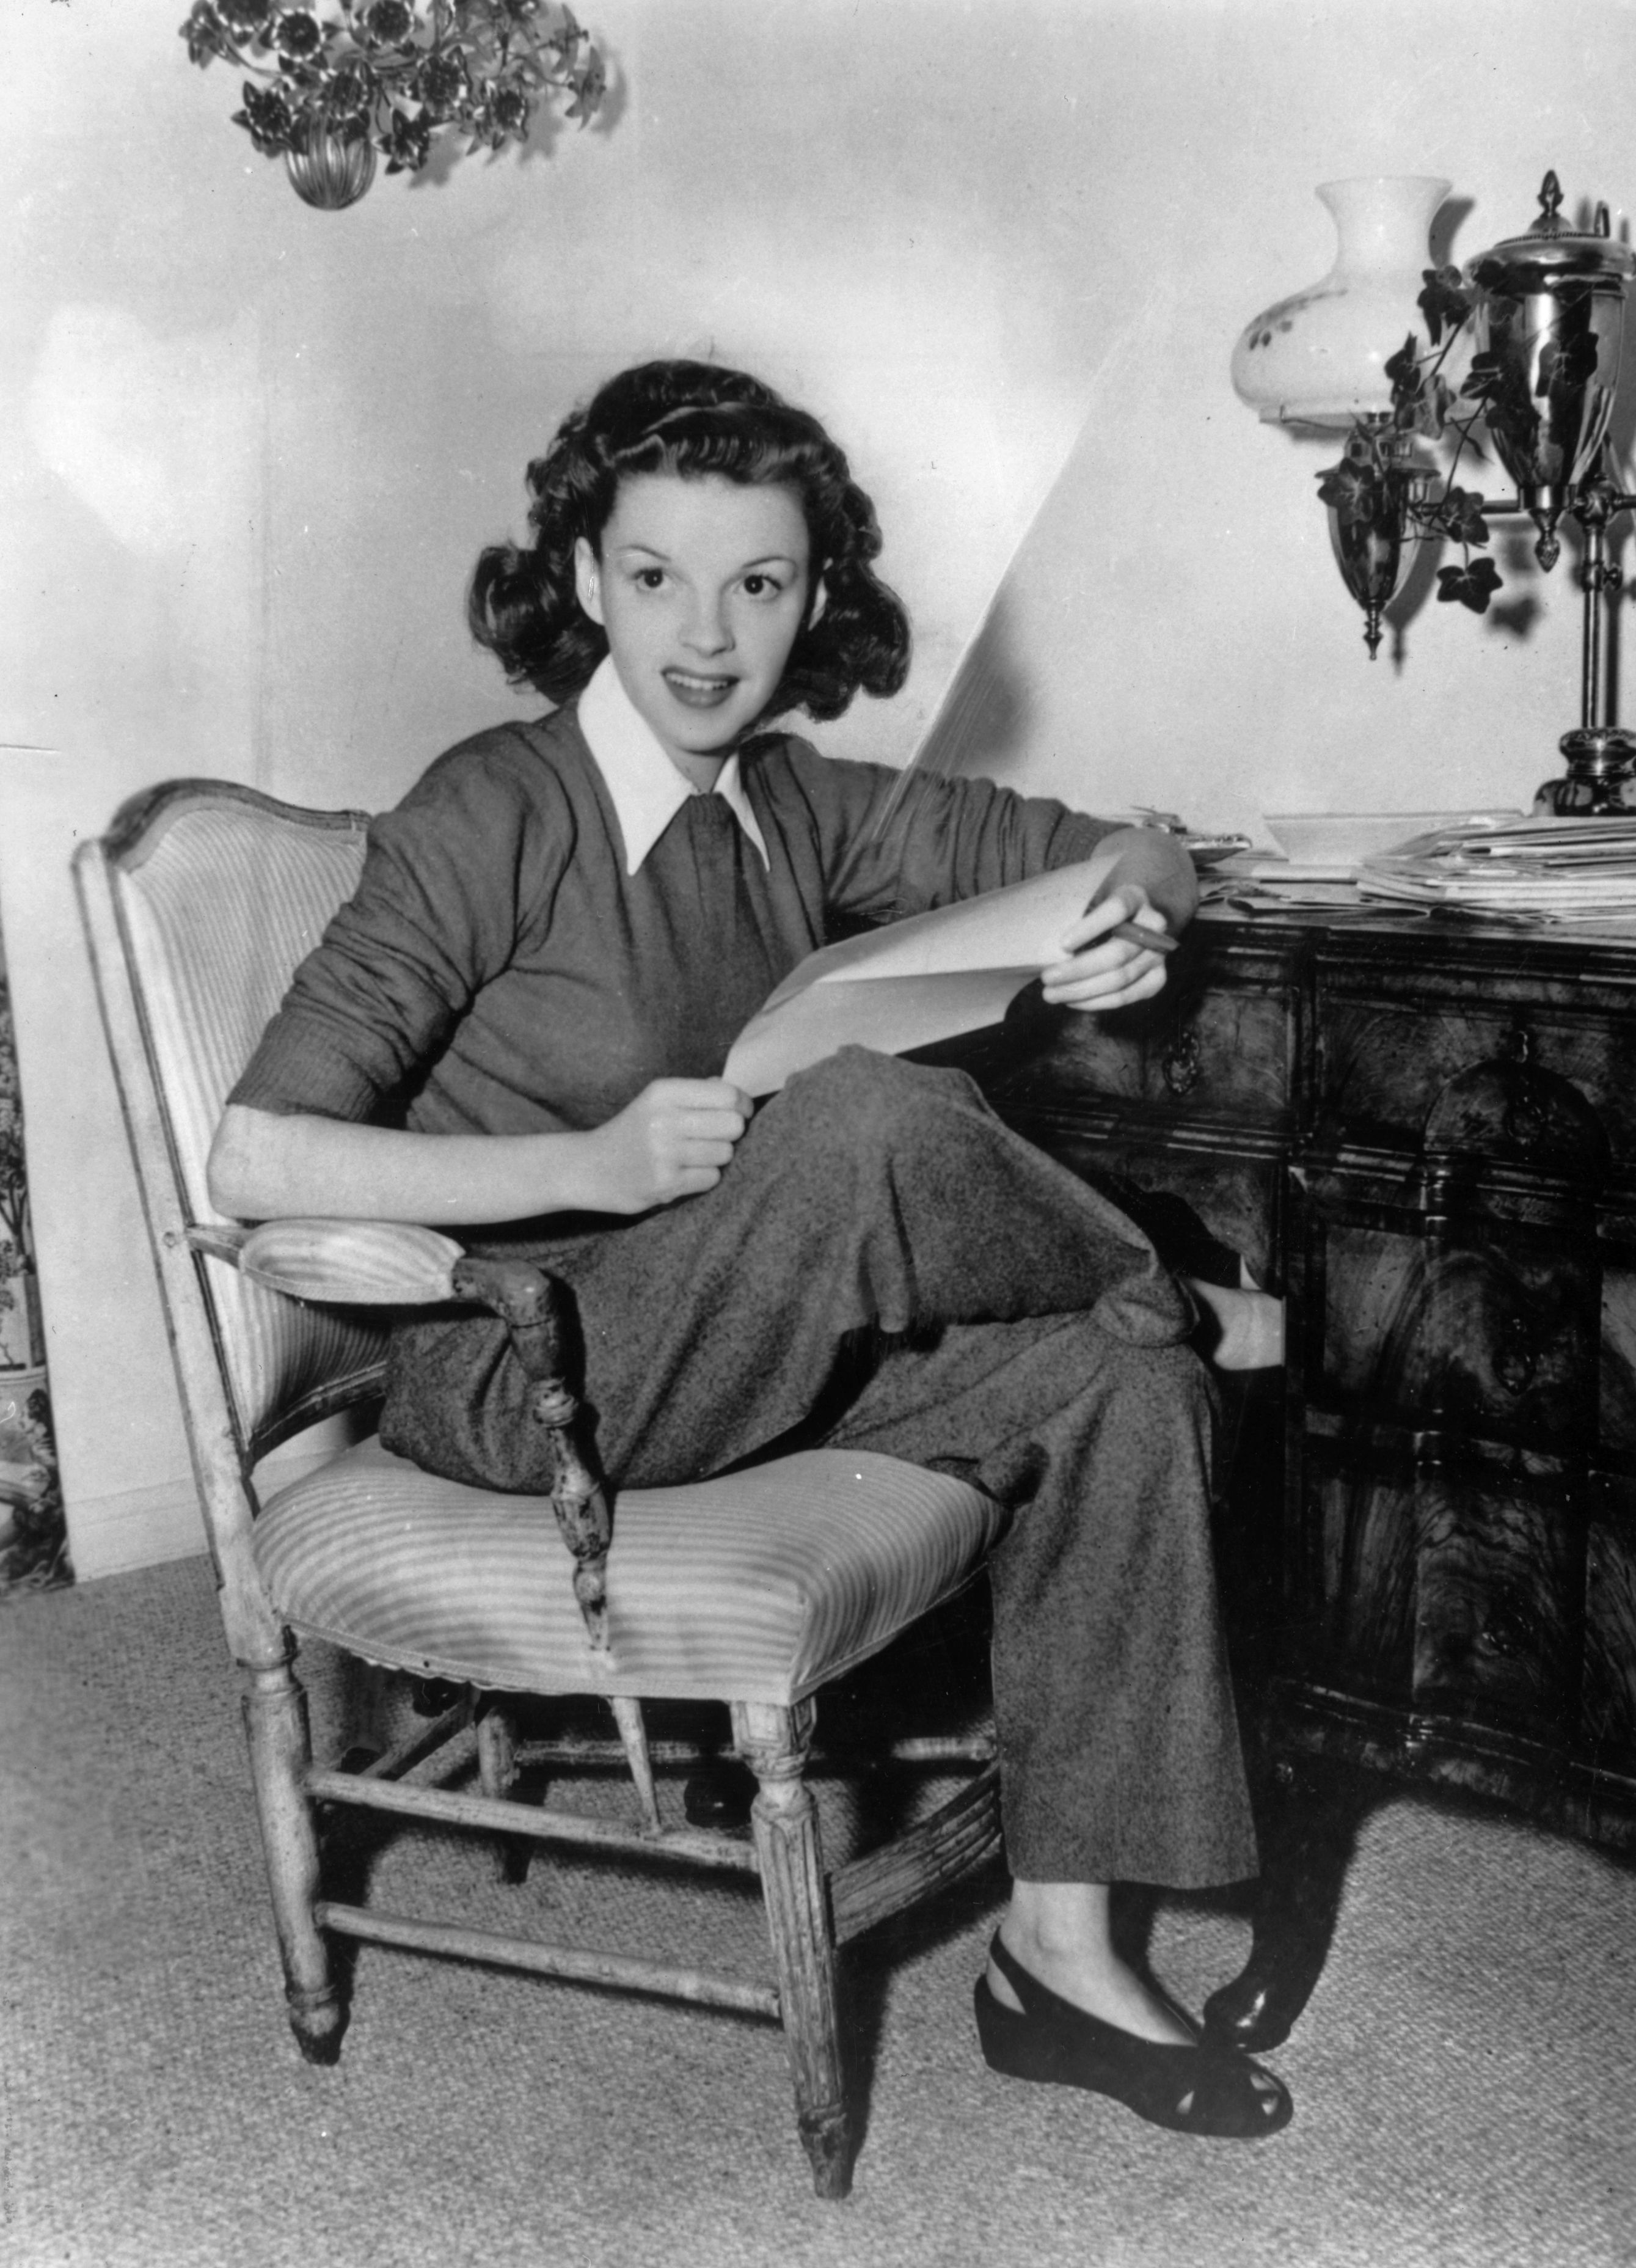 Judy Garland (1922 - 1969) at home answering fan mail in 1944. | Source: Getty Images